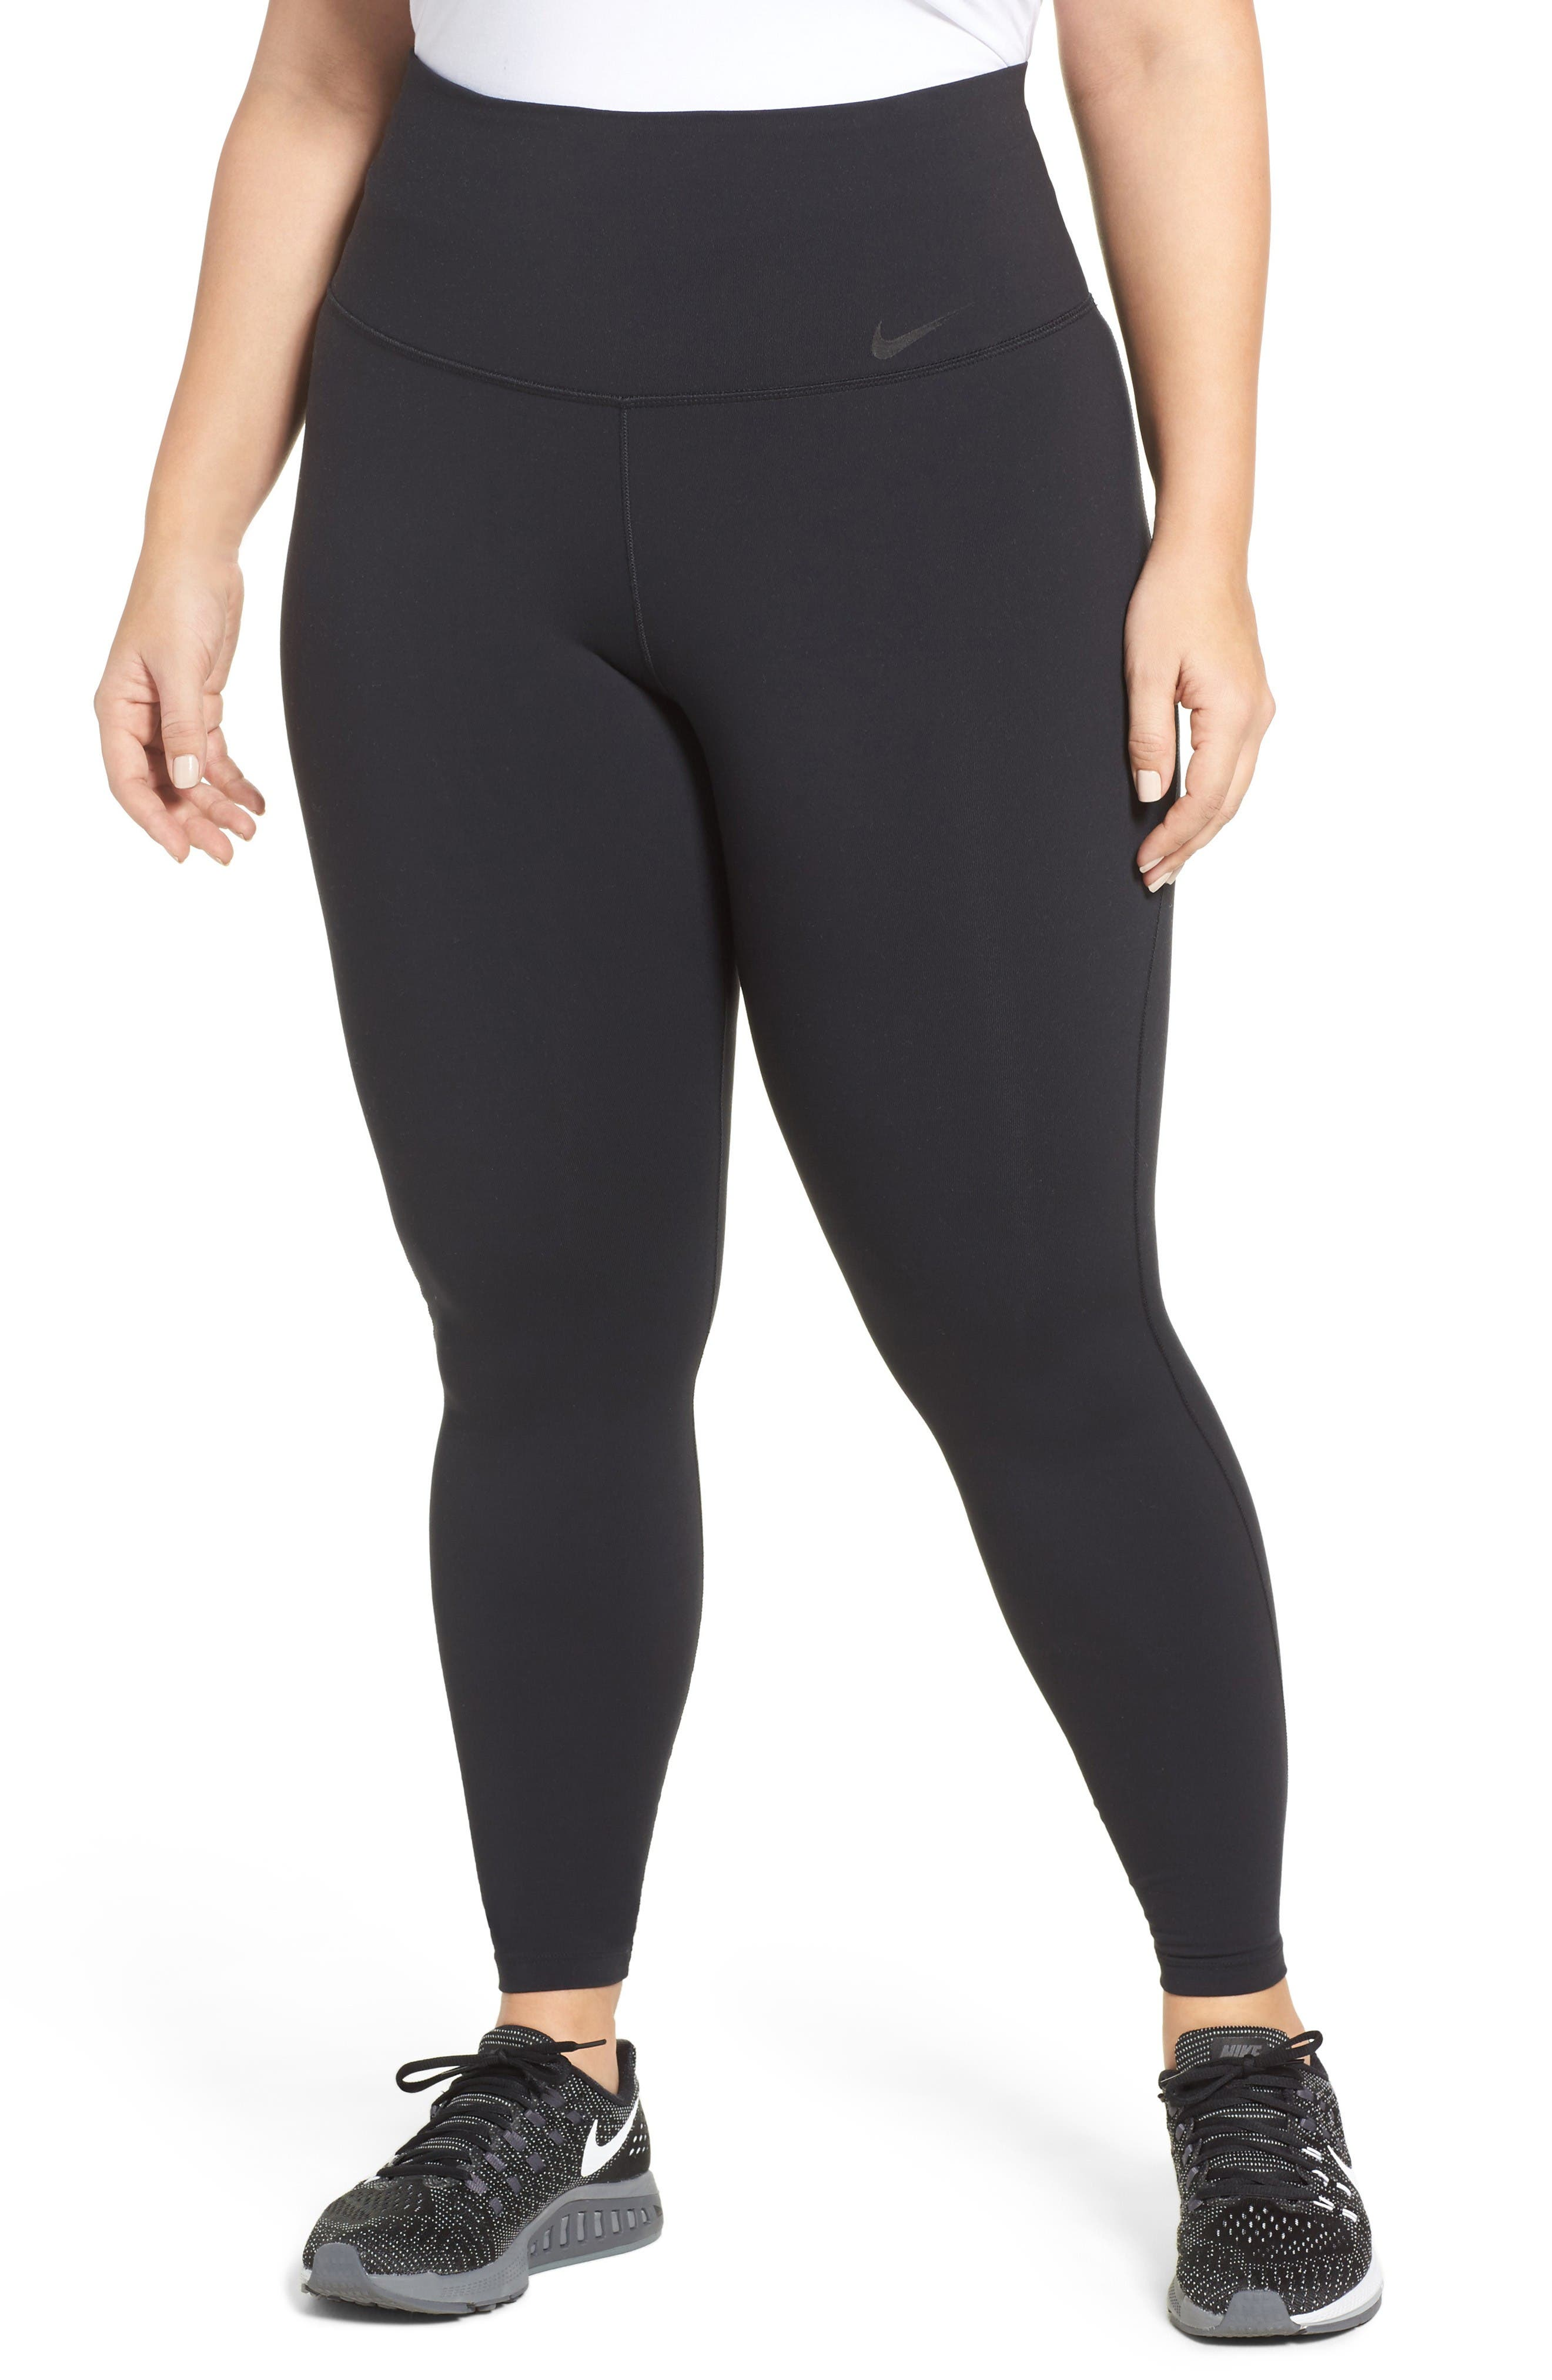 Alternate Image 1 Selected - Nike Power Legendary High Waist Tights (Plus Size)